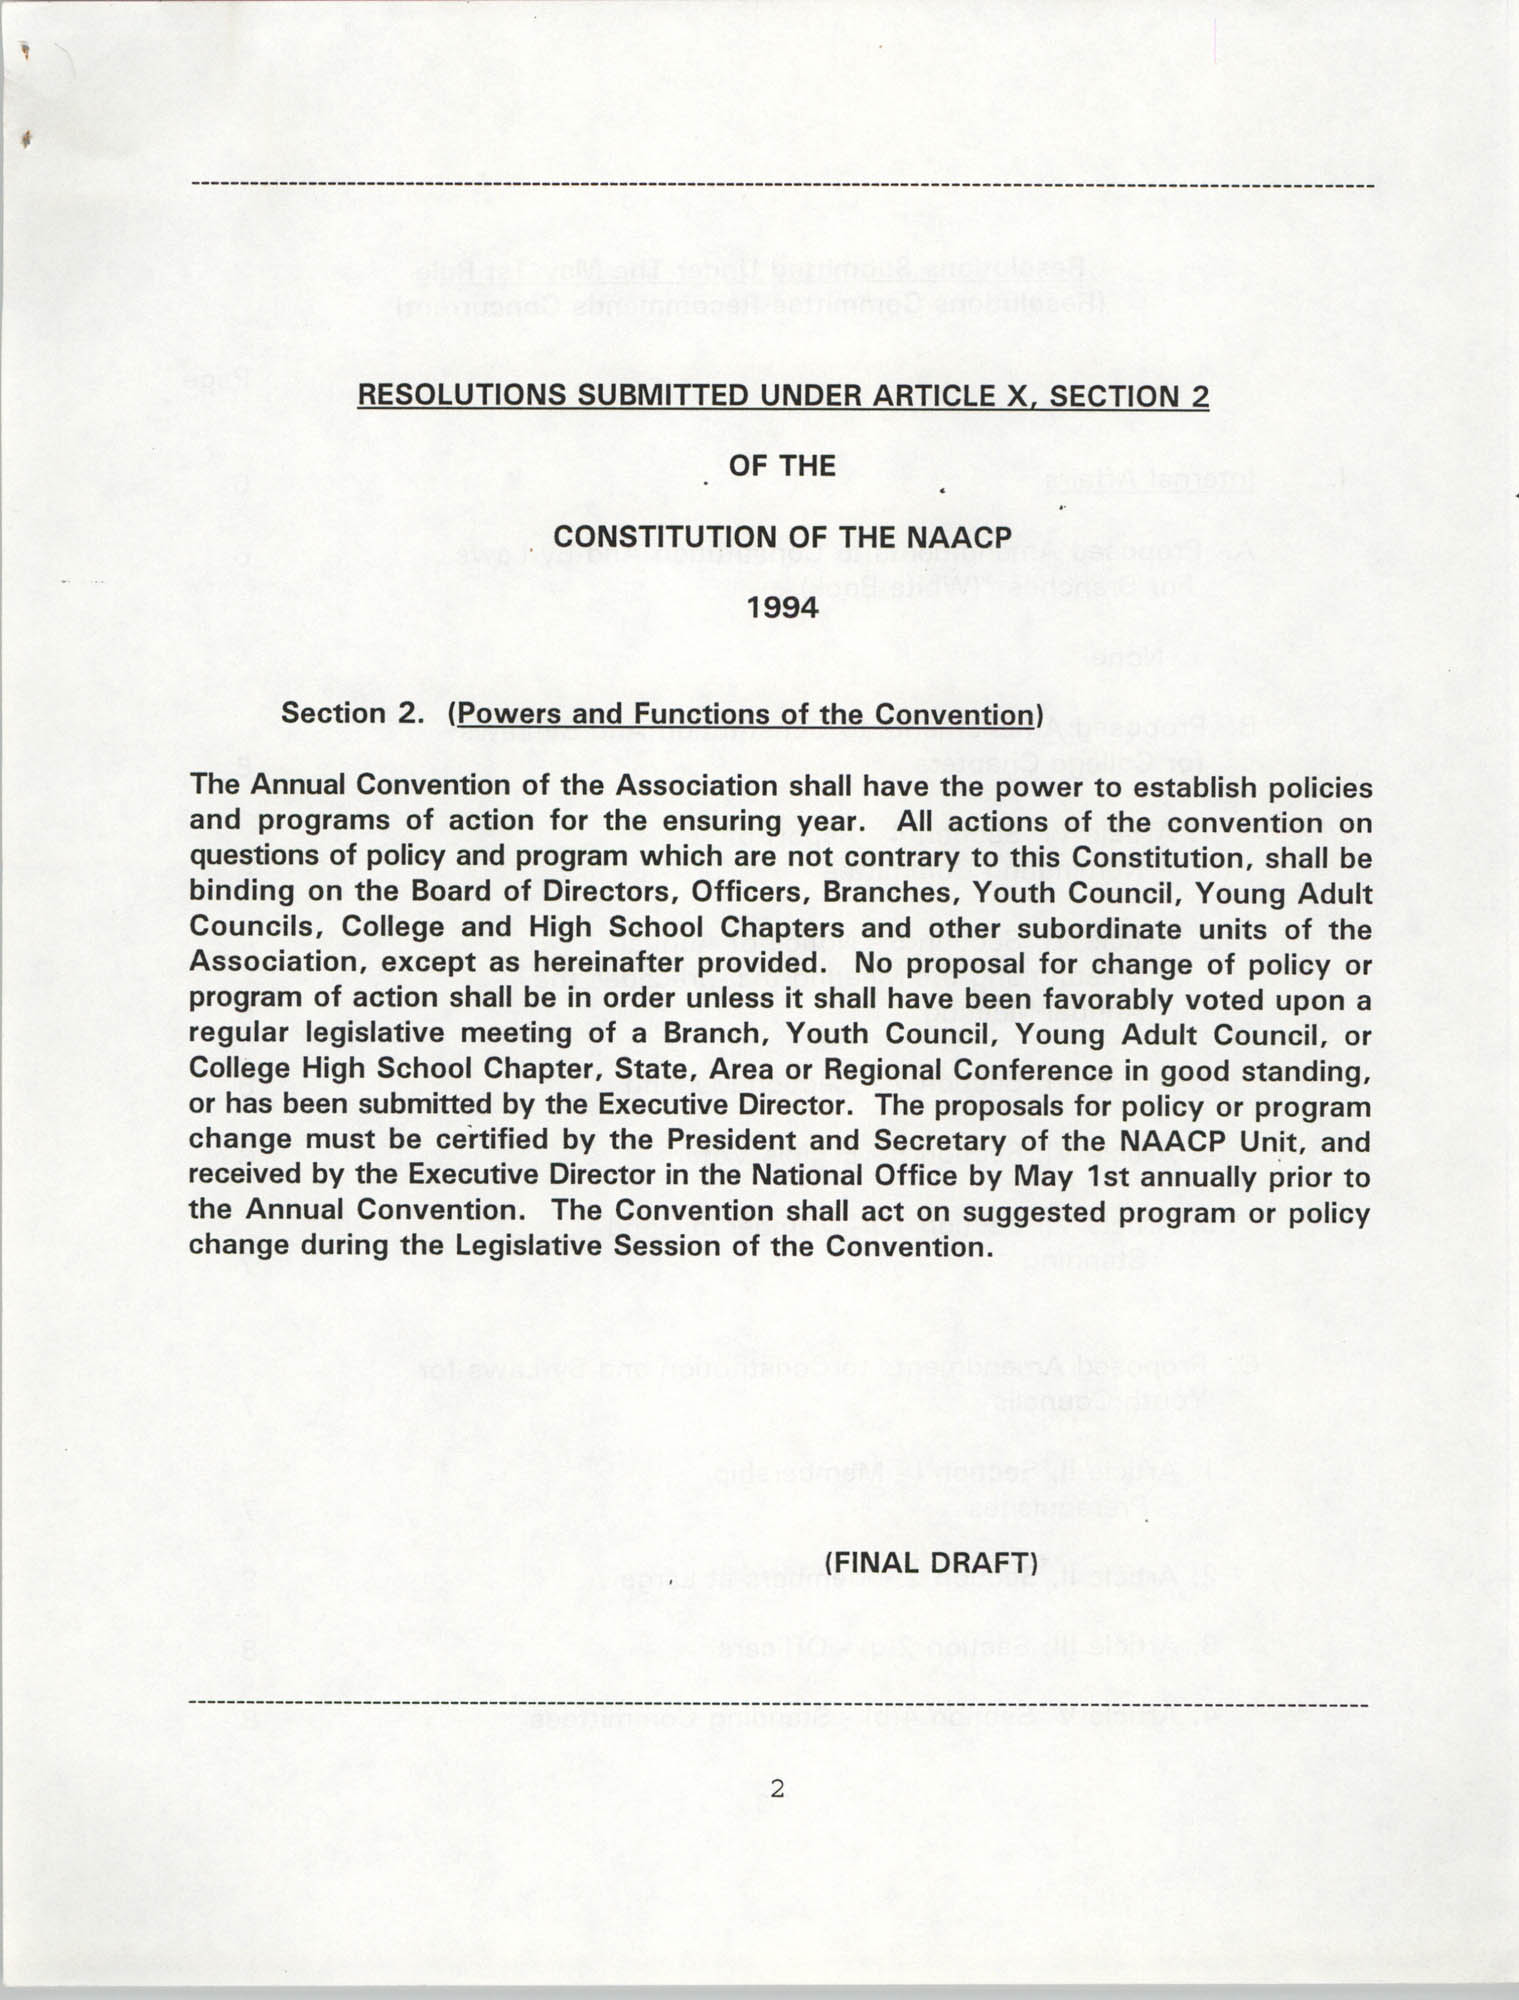 Resolutions Submitted Under Article X, Section 2 of the Constitution of the NAACP, 1994